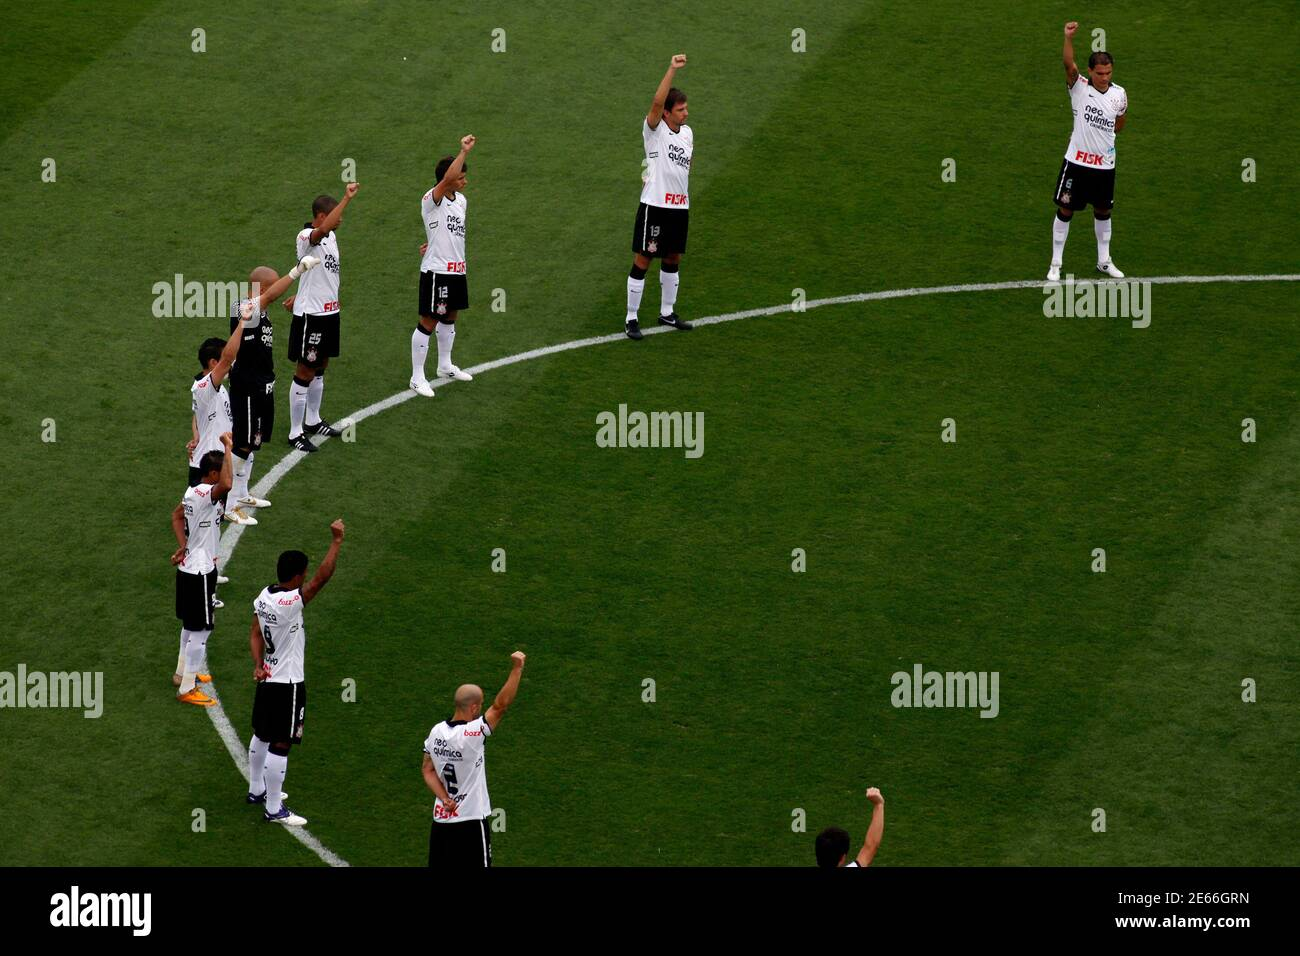 Corinthians soccer players observe a minute's silence for Brazil former soccer player Socrates  before their Brazilian championship against Palmeiras in Sao Paulo December 4, 2011. Brazil 1982 World Cup captain Socrates, the 'Golden Heel' renowned as one of the great playmakers of his generation, died in hospital on Sunday of septic shock at the age of 57, his doctors said in a statement. REUTERS/Nacho Doce (BRAZIL - Tags: SPORT SOCCER OBITUARY) Stock Photo